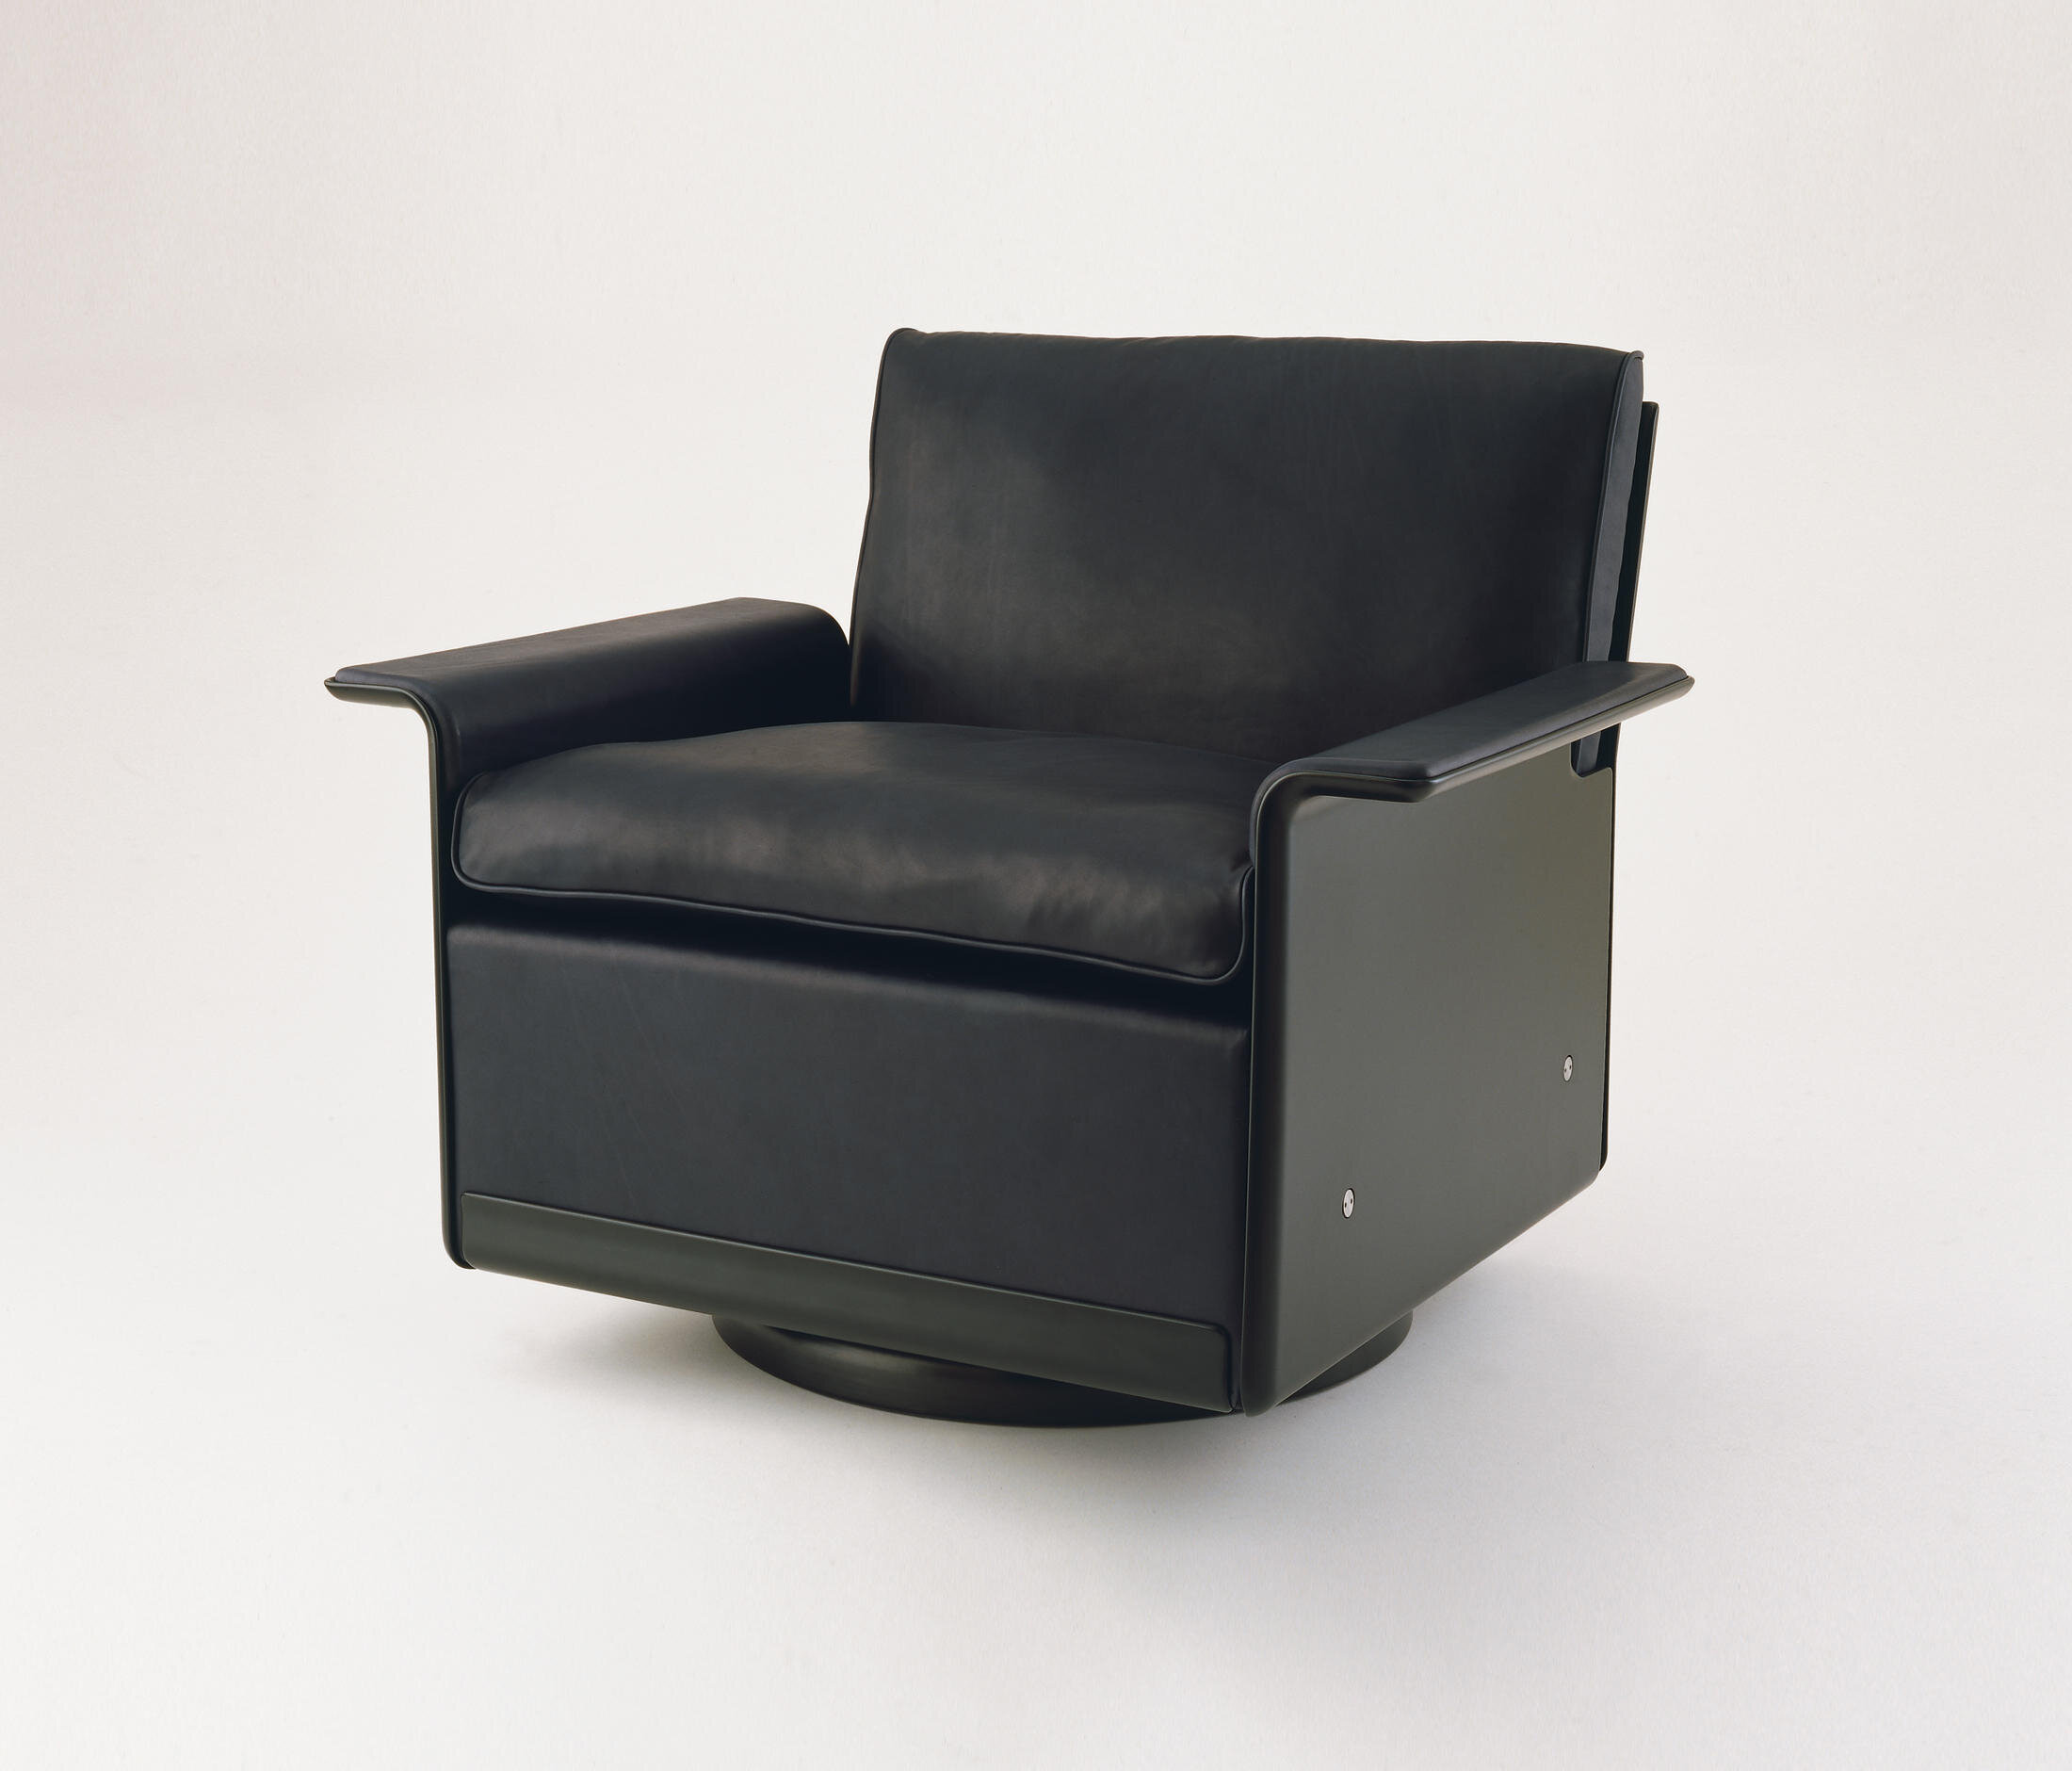 Dieter Rams 620 Chair Programme manufactured by Vitsoe